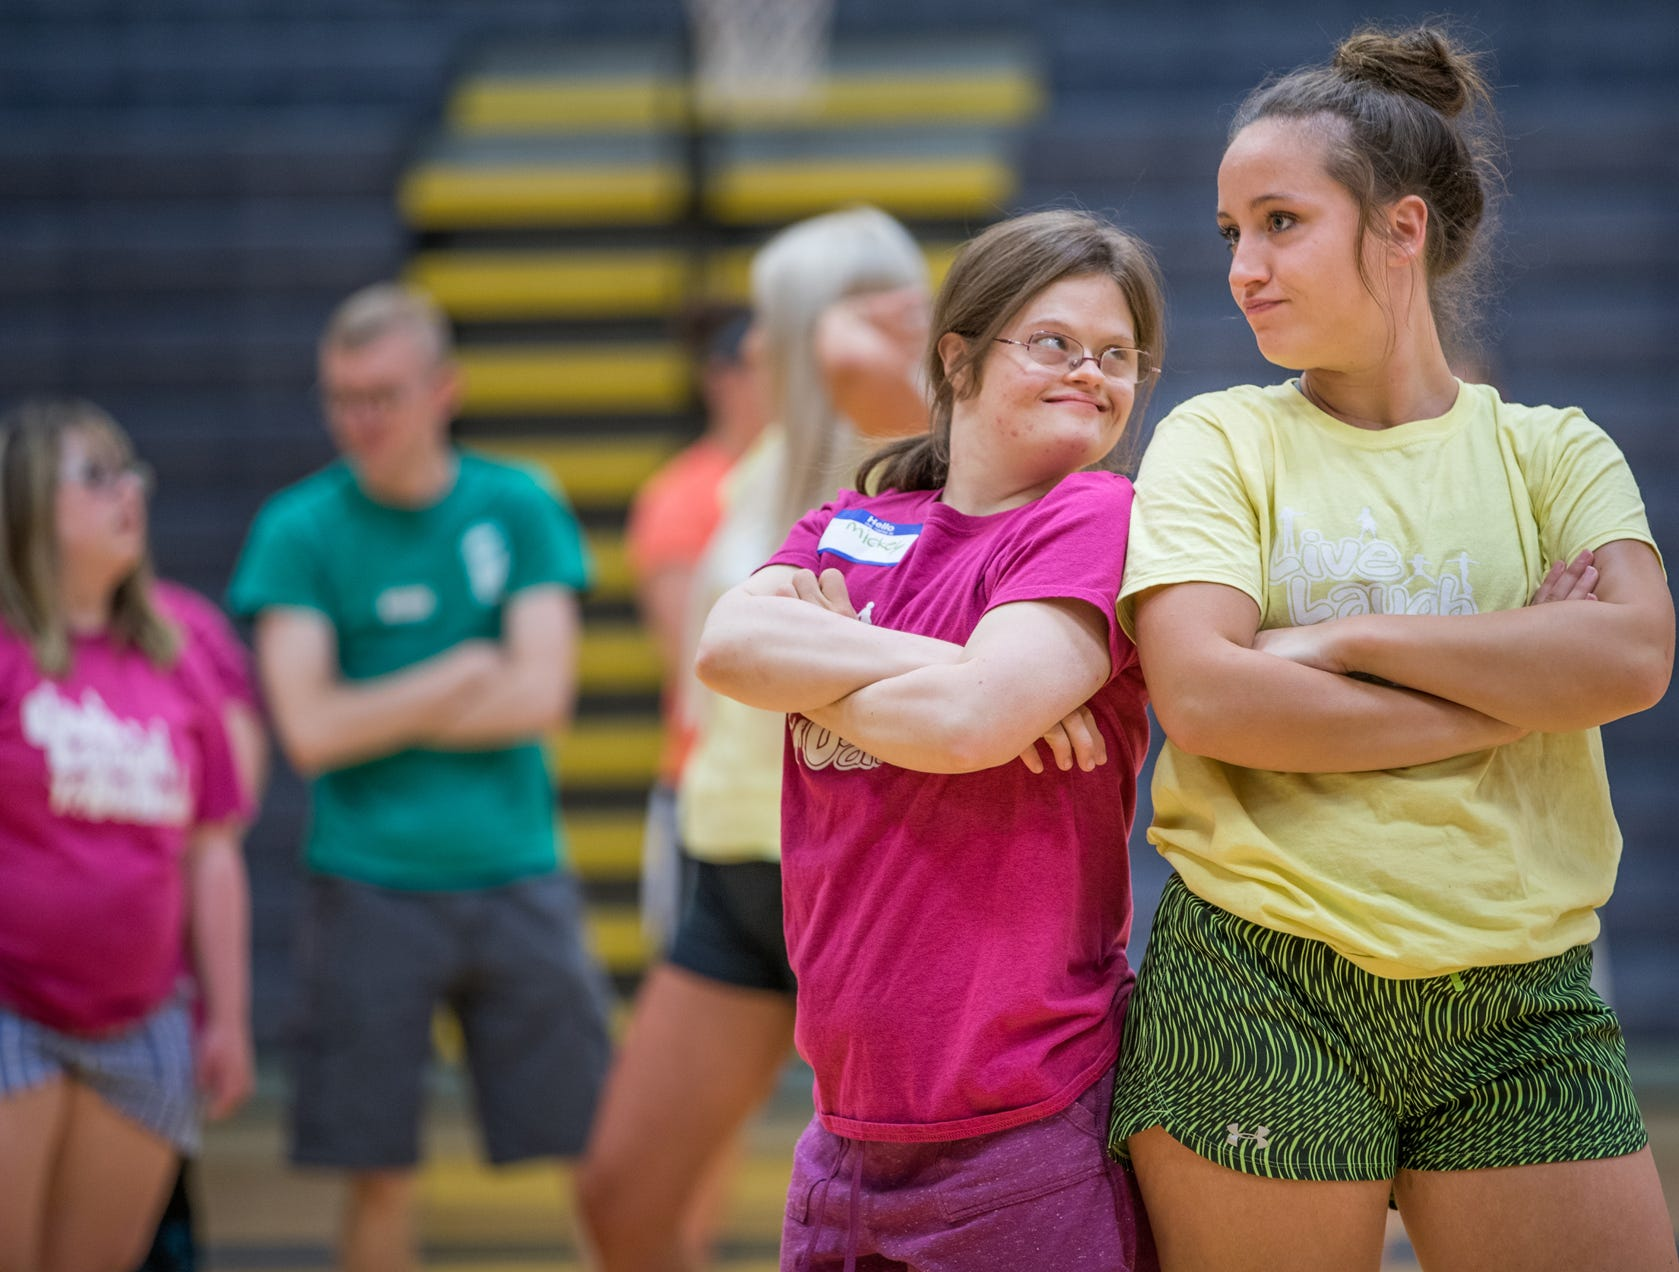 """Mickey Deputy (left) and her dance partner, Kelsey Edington, a volunteer, pose after a dance routine during Live Laugh Dance on Tuesday, July 10, 2018. """"She just has the biggest personality,"""" said Edington. """"She's super sassy and makes me laugh."""""""